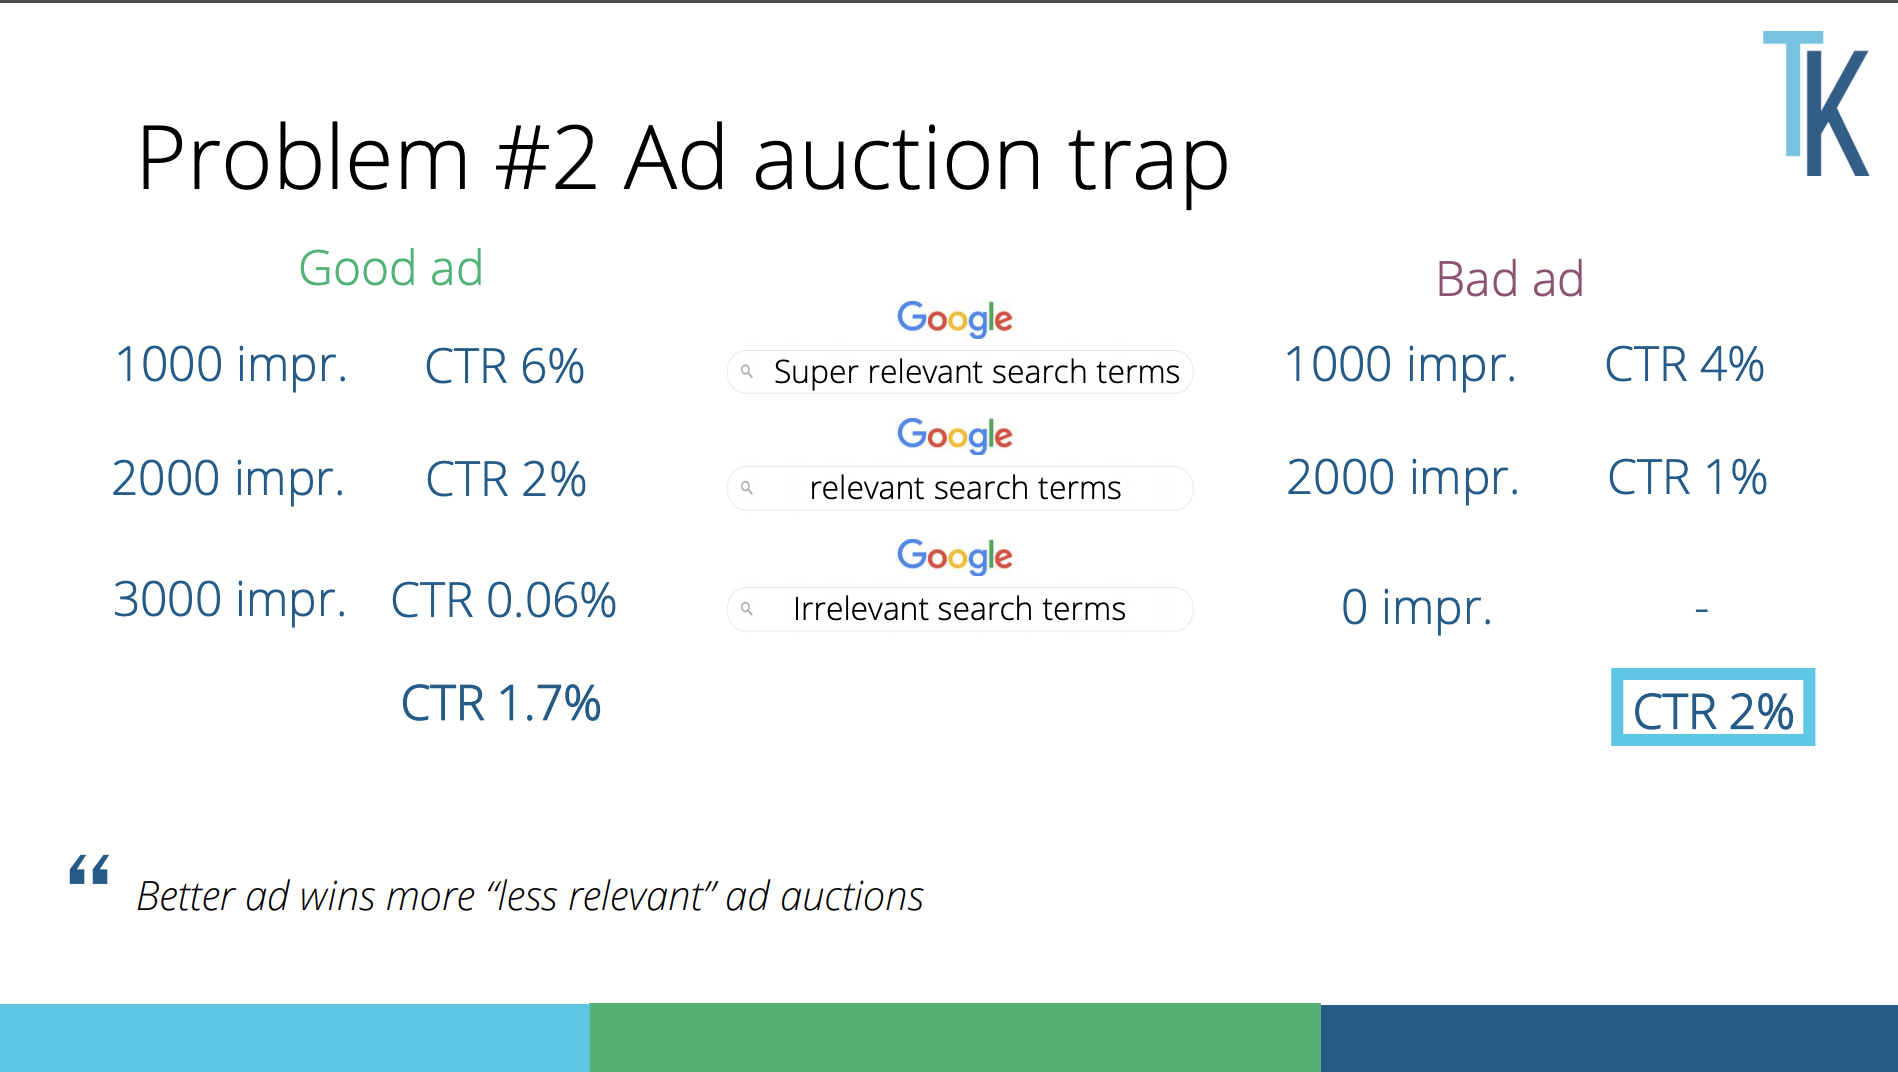 Better performing ad gets more of less relevant impressions and may seem less effective at the first glance